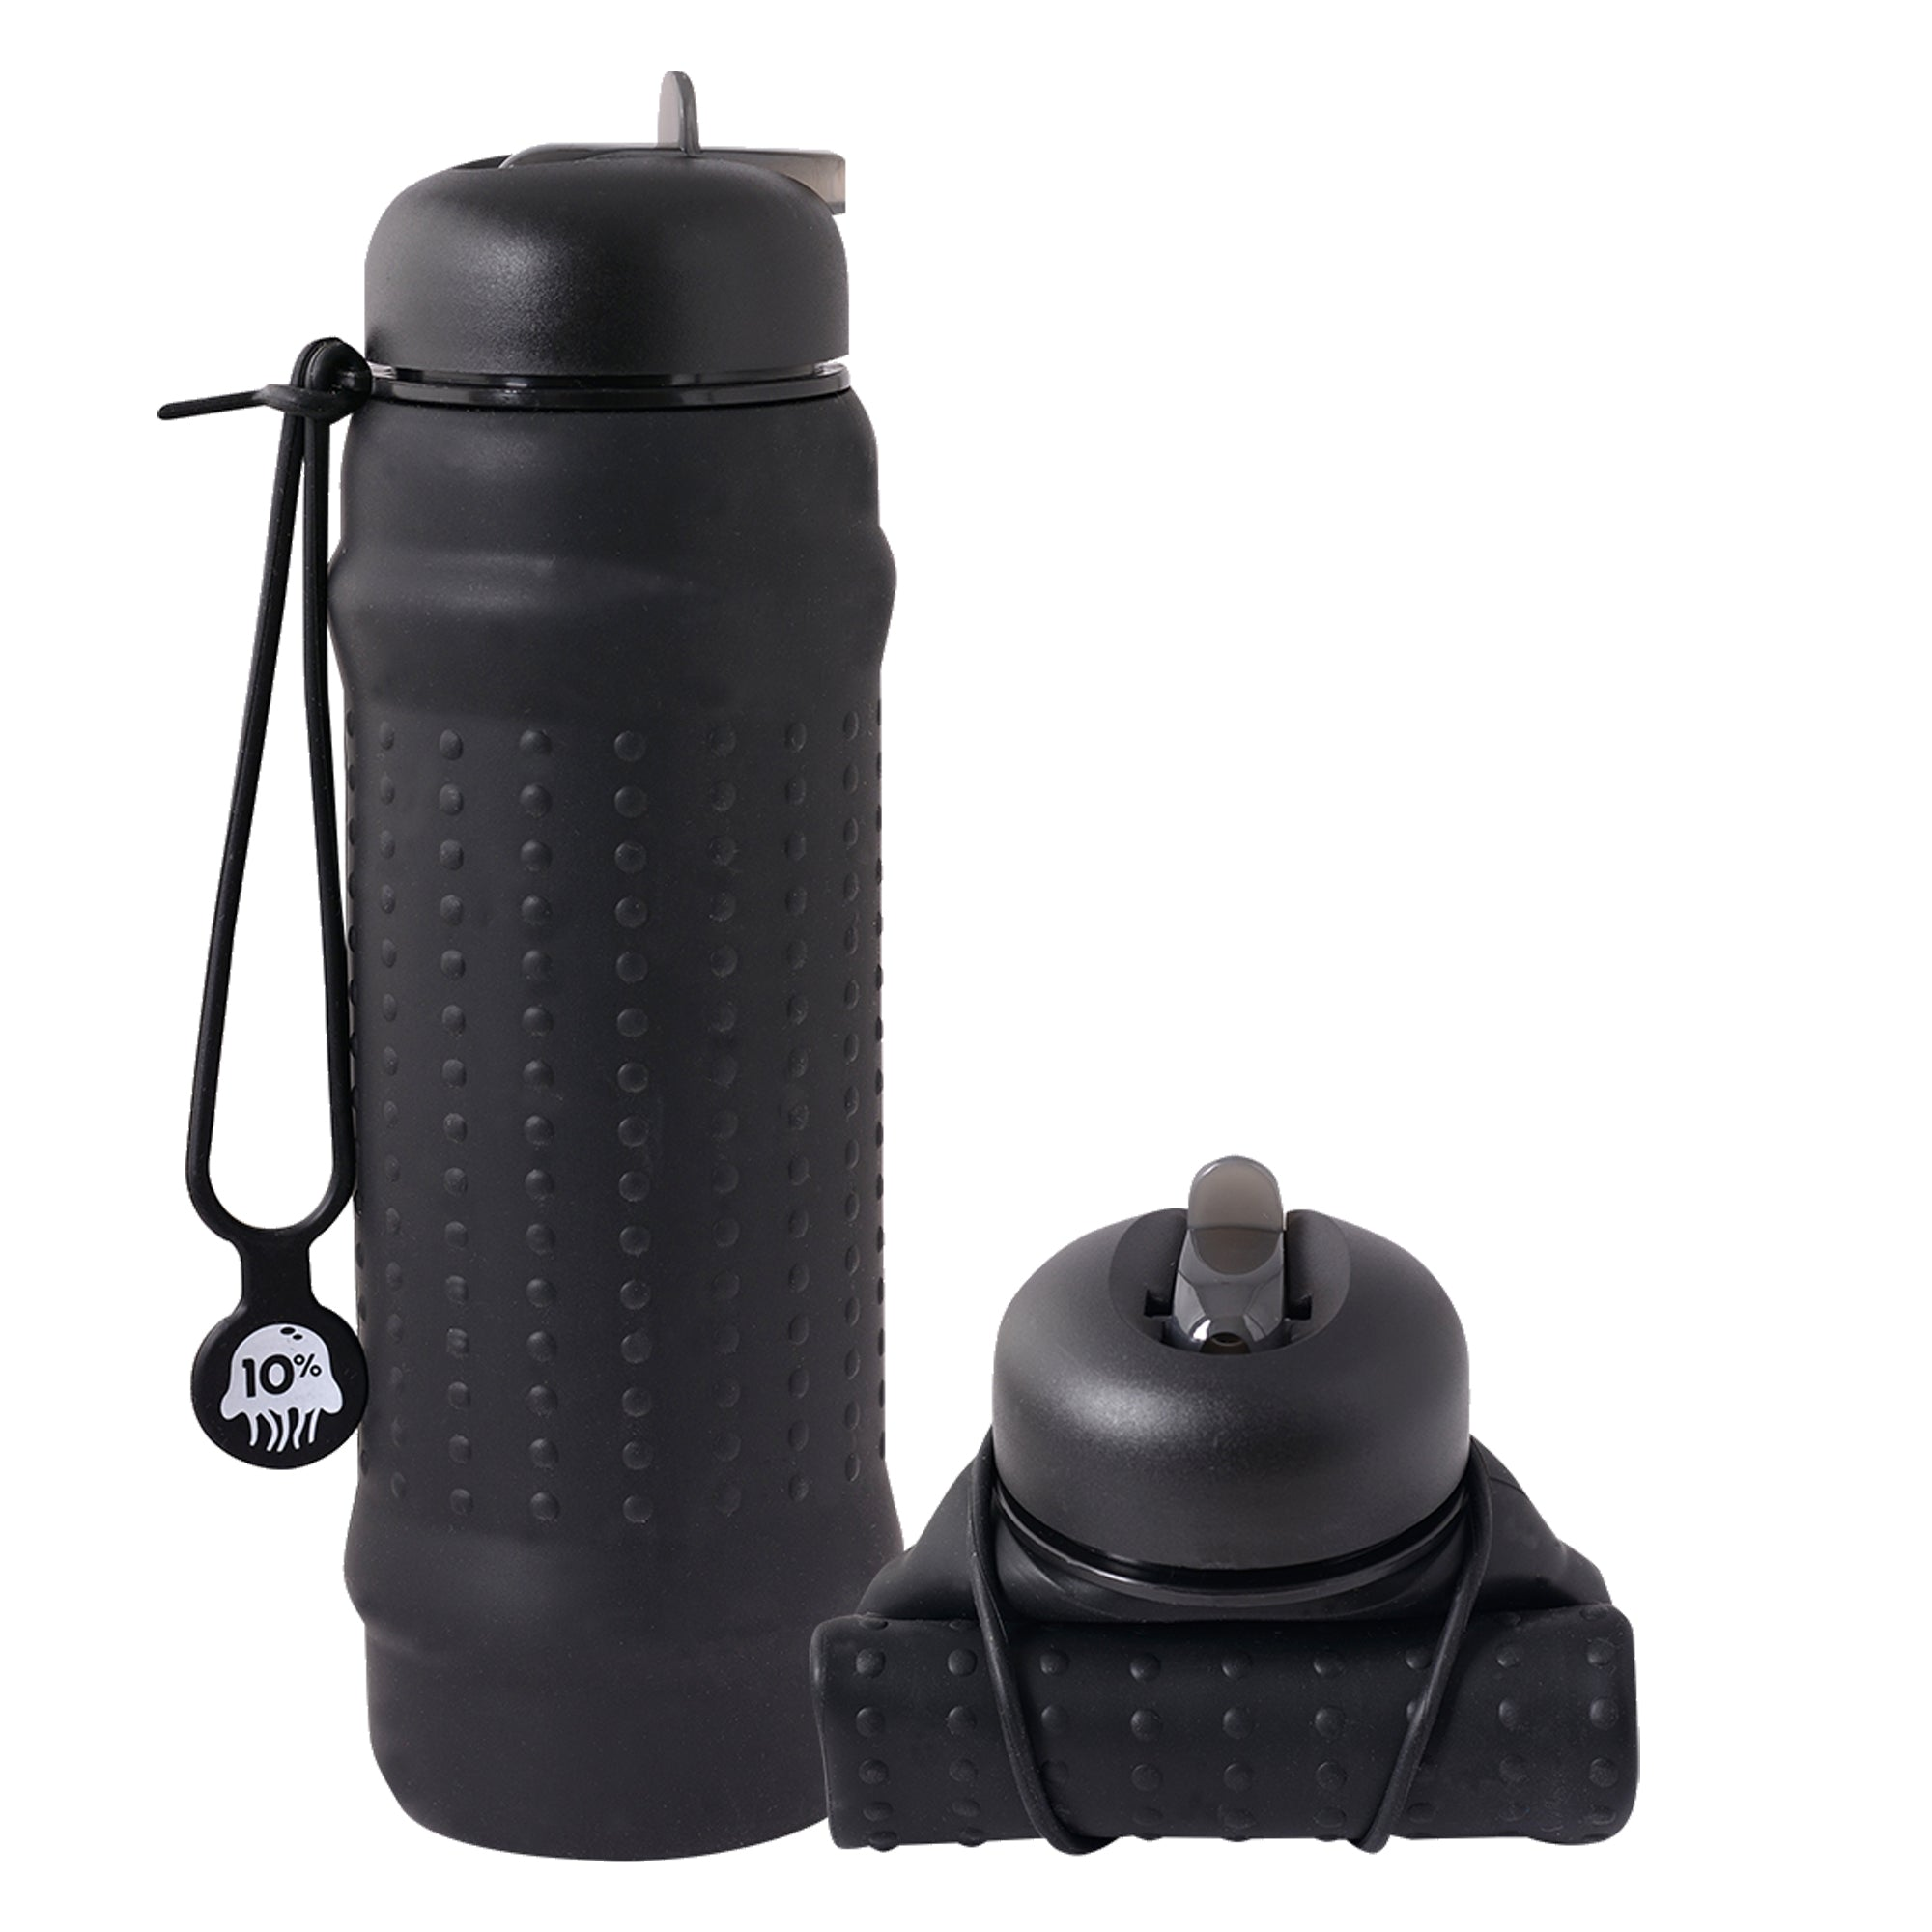 Rolla Bottle, black bottle with black lid and strap